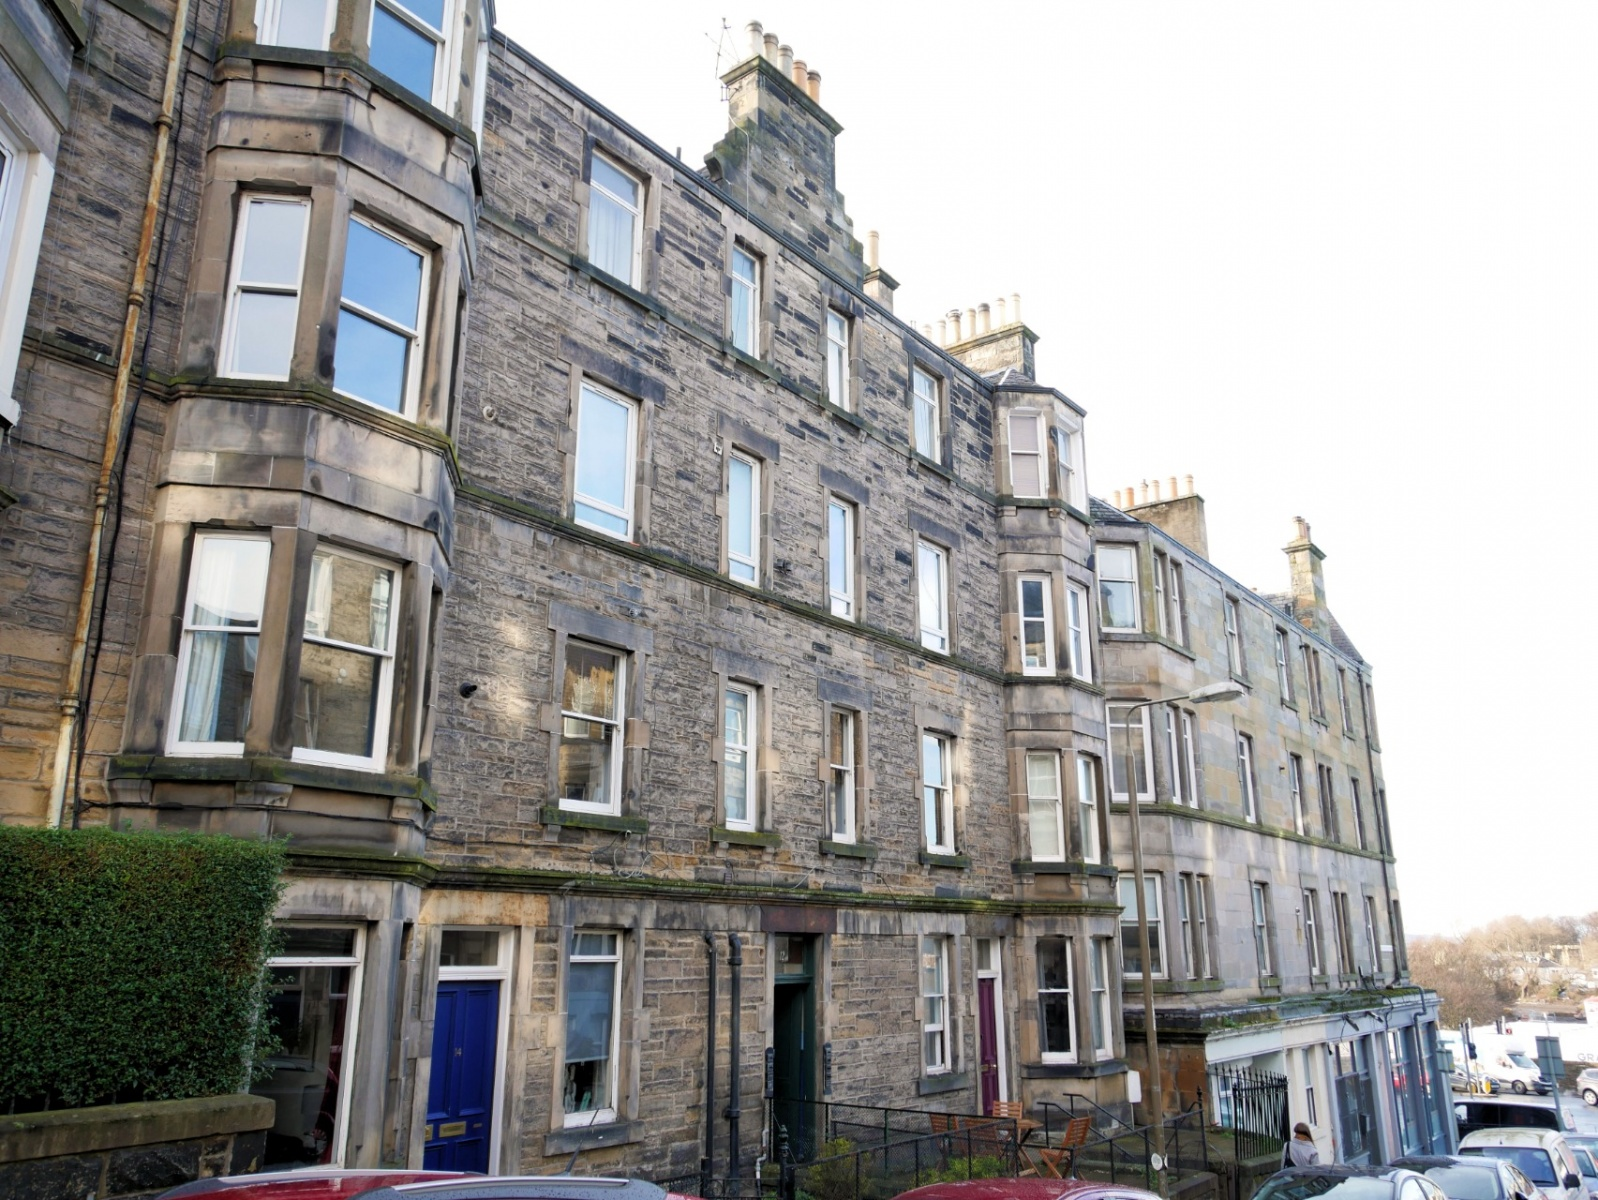 P248: Meadowbank Avenue, Meadowbank, Edinburgh